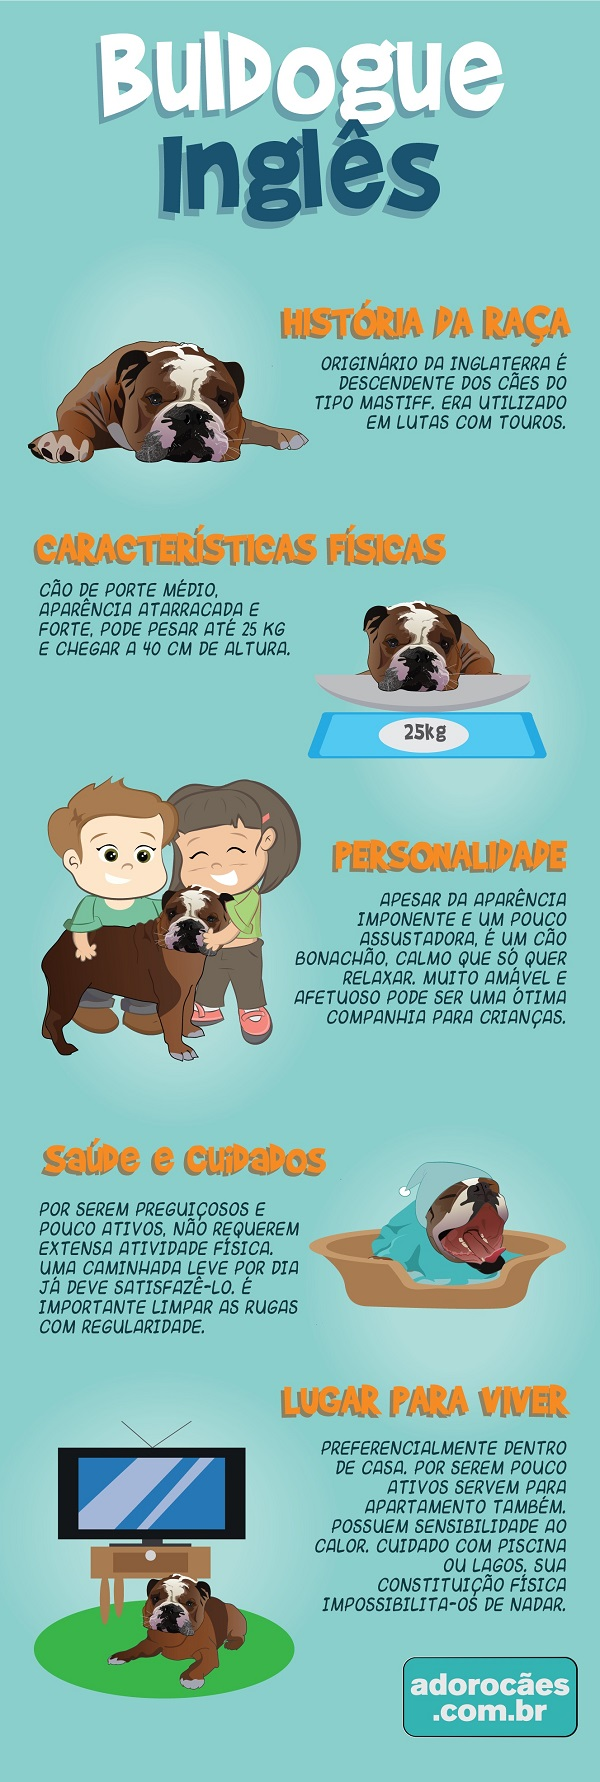 buldogue ingles infografico